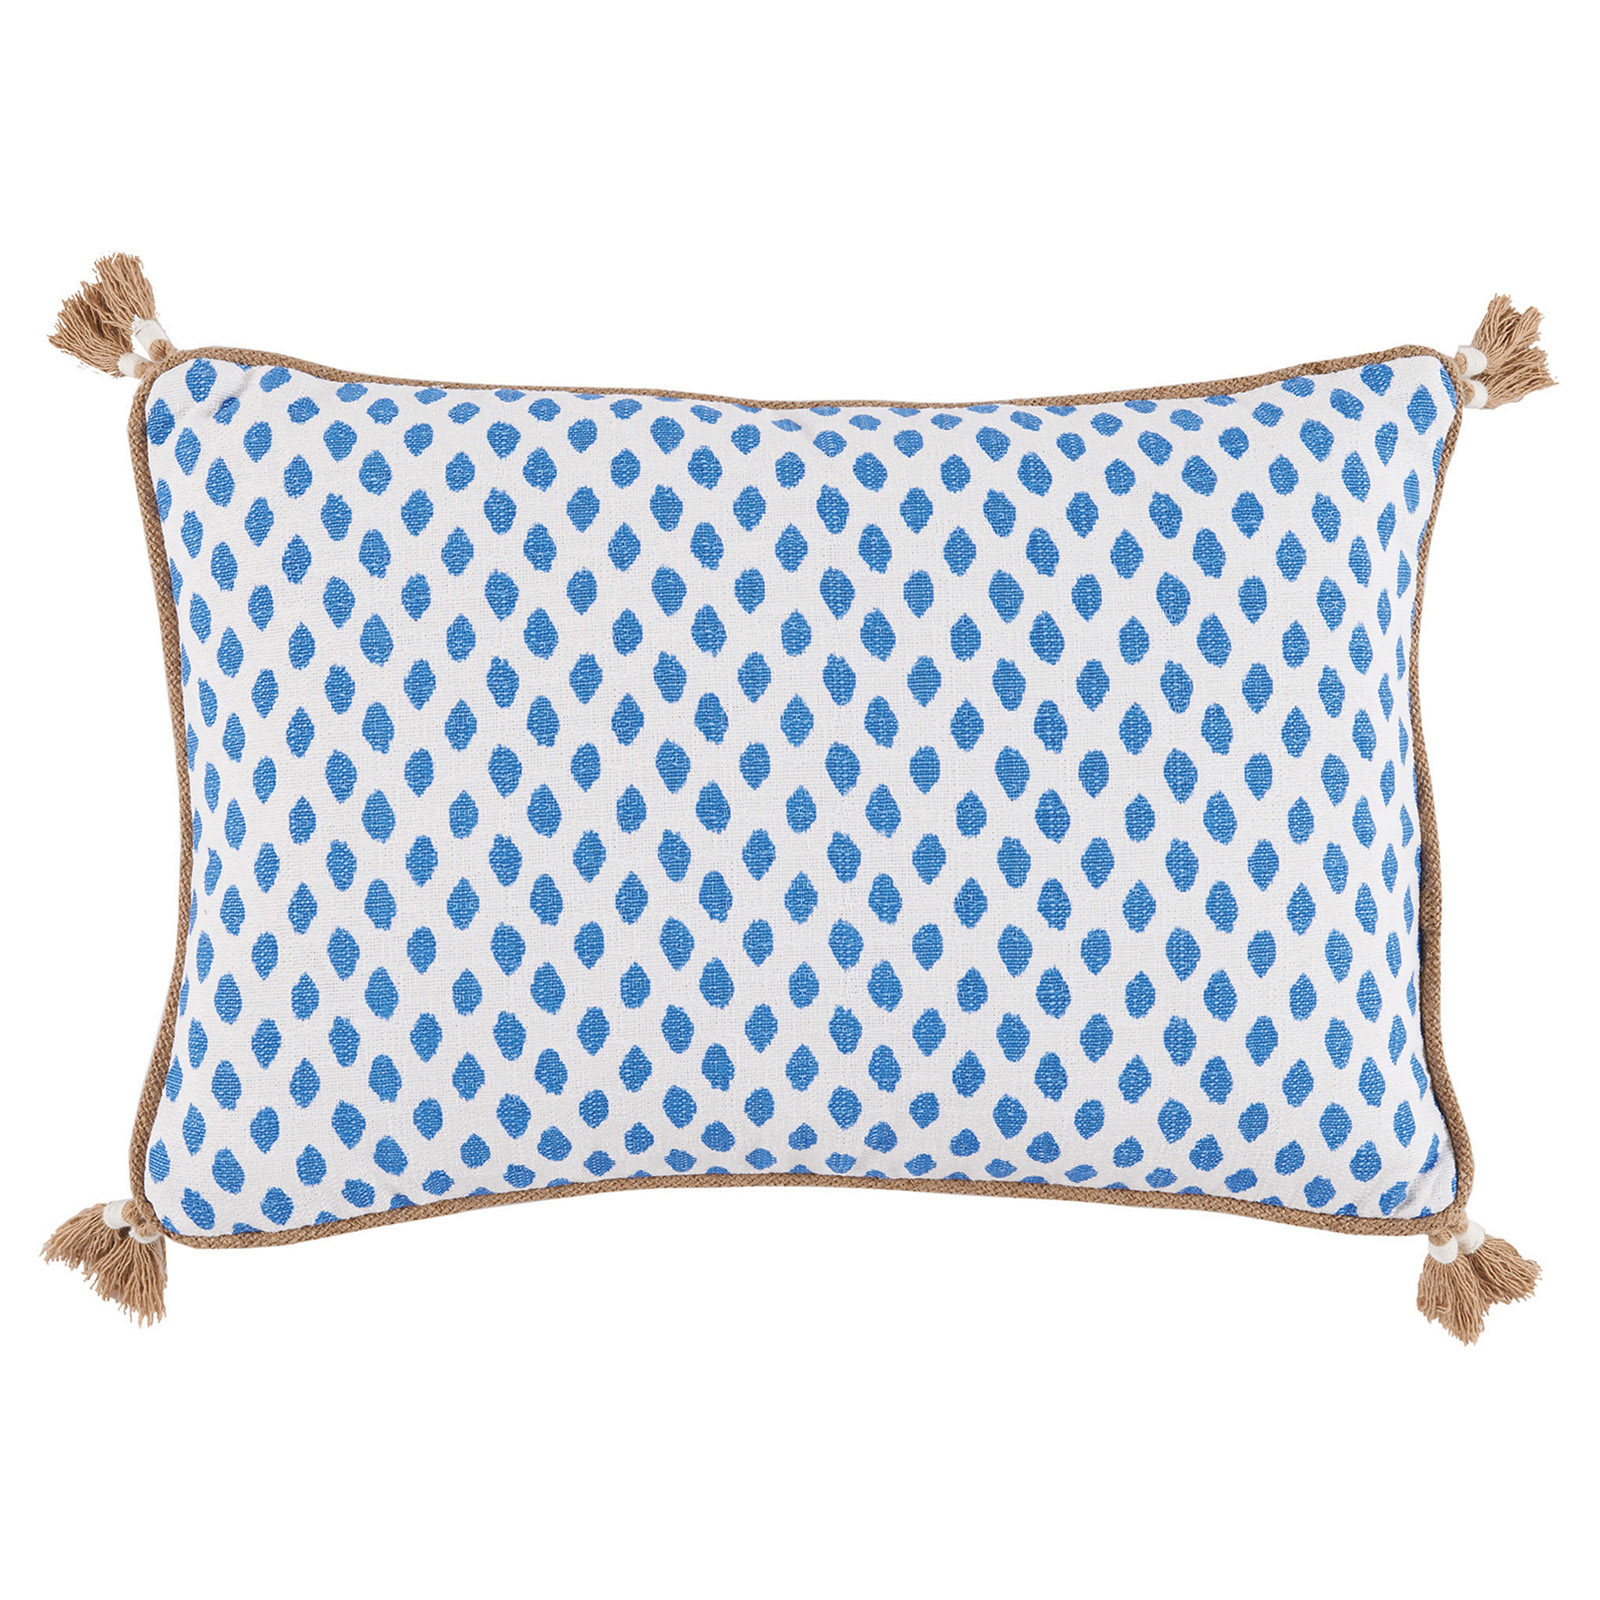 Milia Bazaar Blue Tribal Dot Tassel Trim Pillow - 13x19